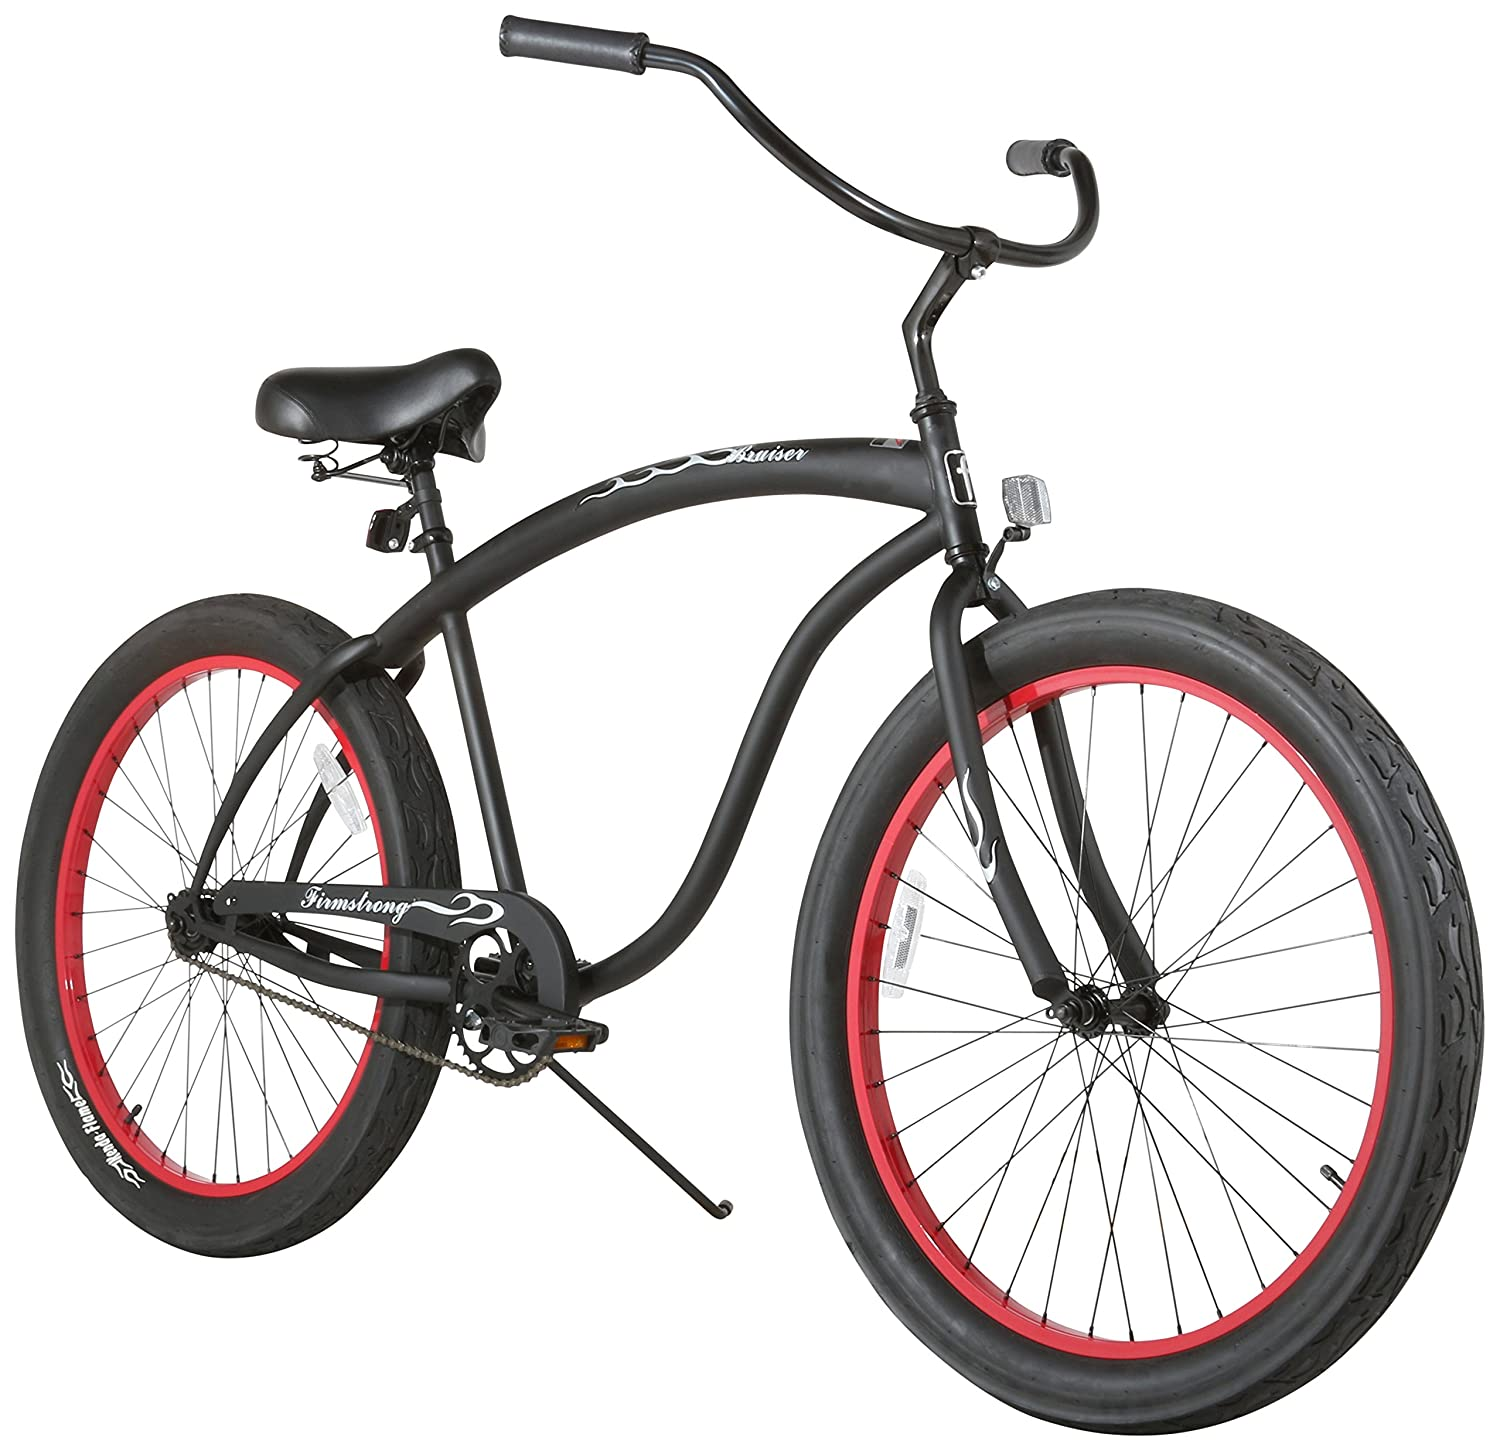 Cruiser Bikes For Large People Firmstrong Bruiser Man